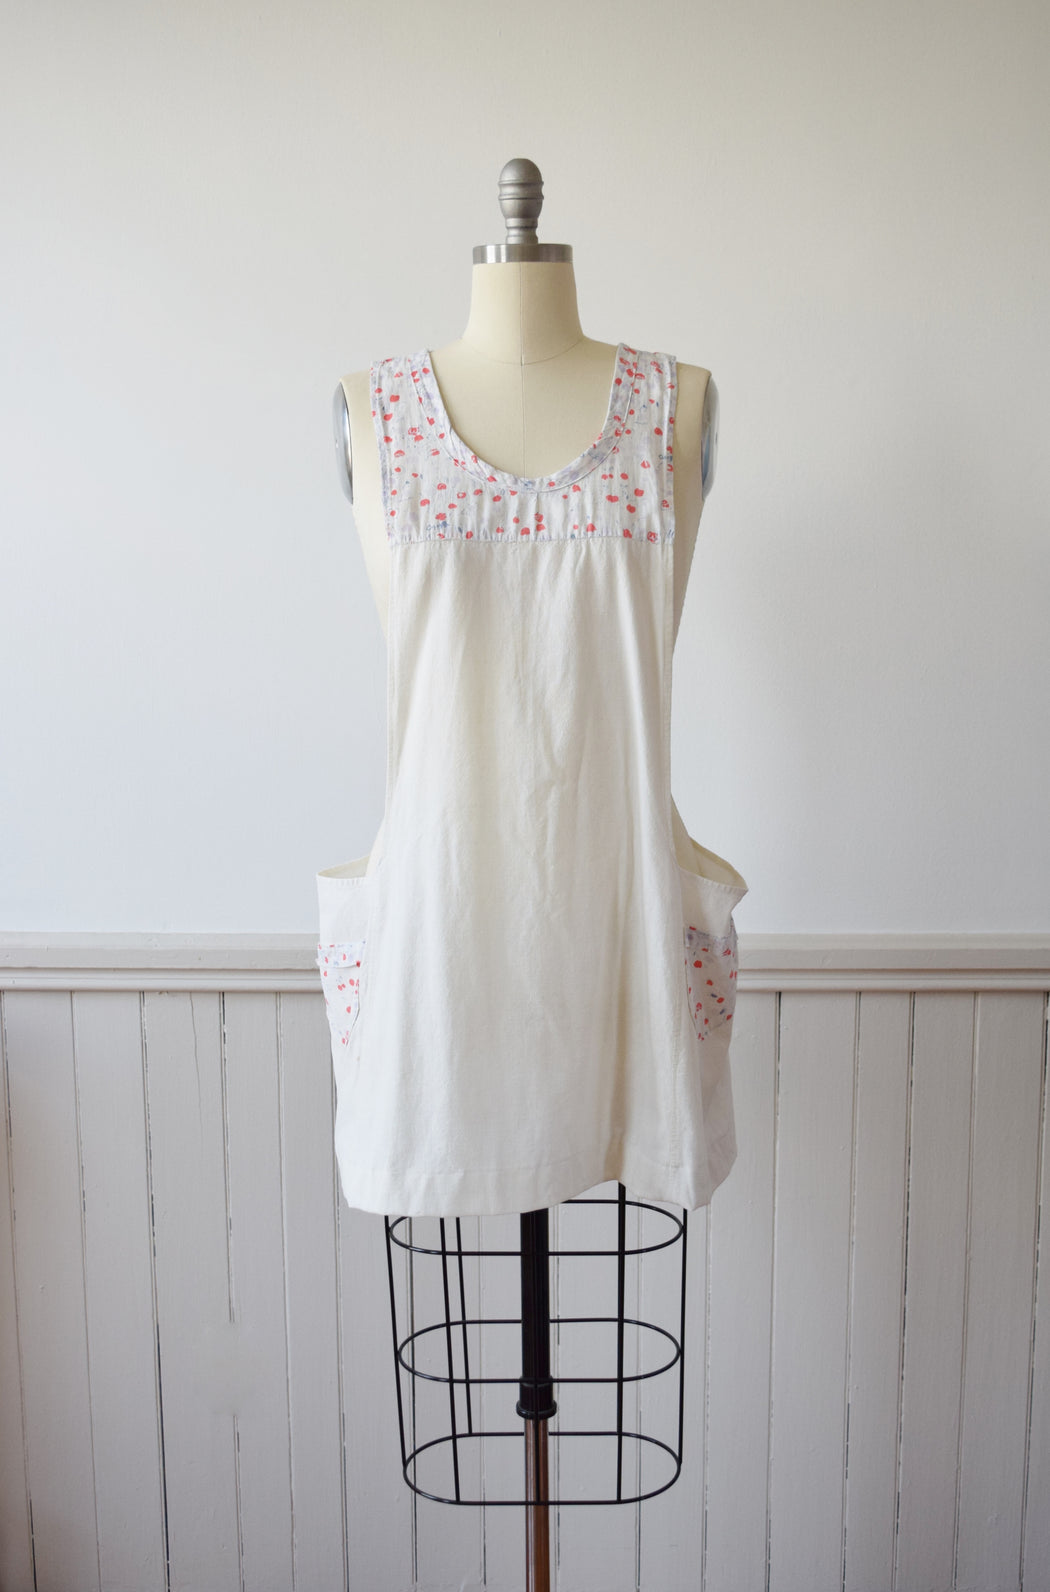 1920s Smock | Apron with Novelty Print Accents